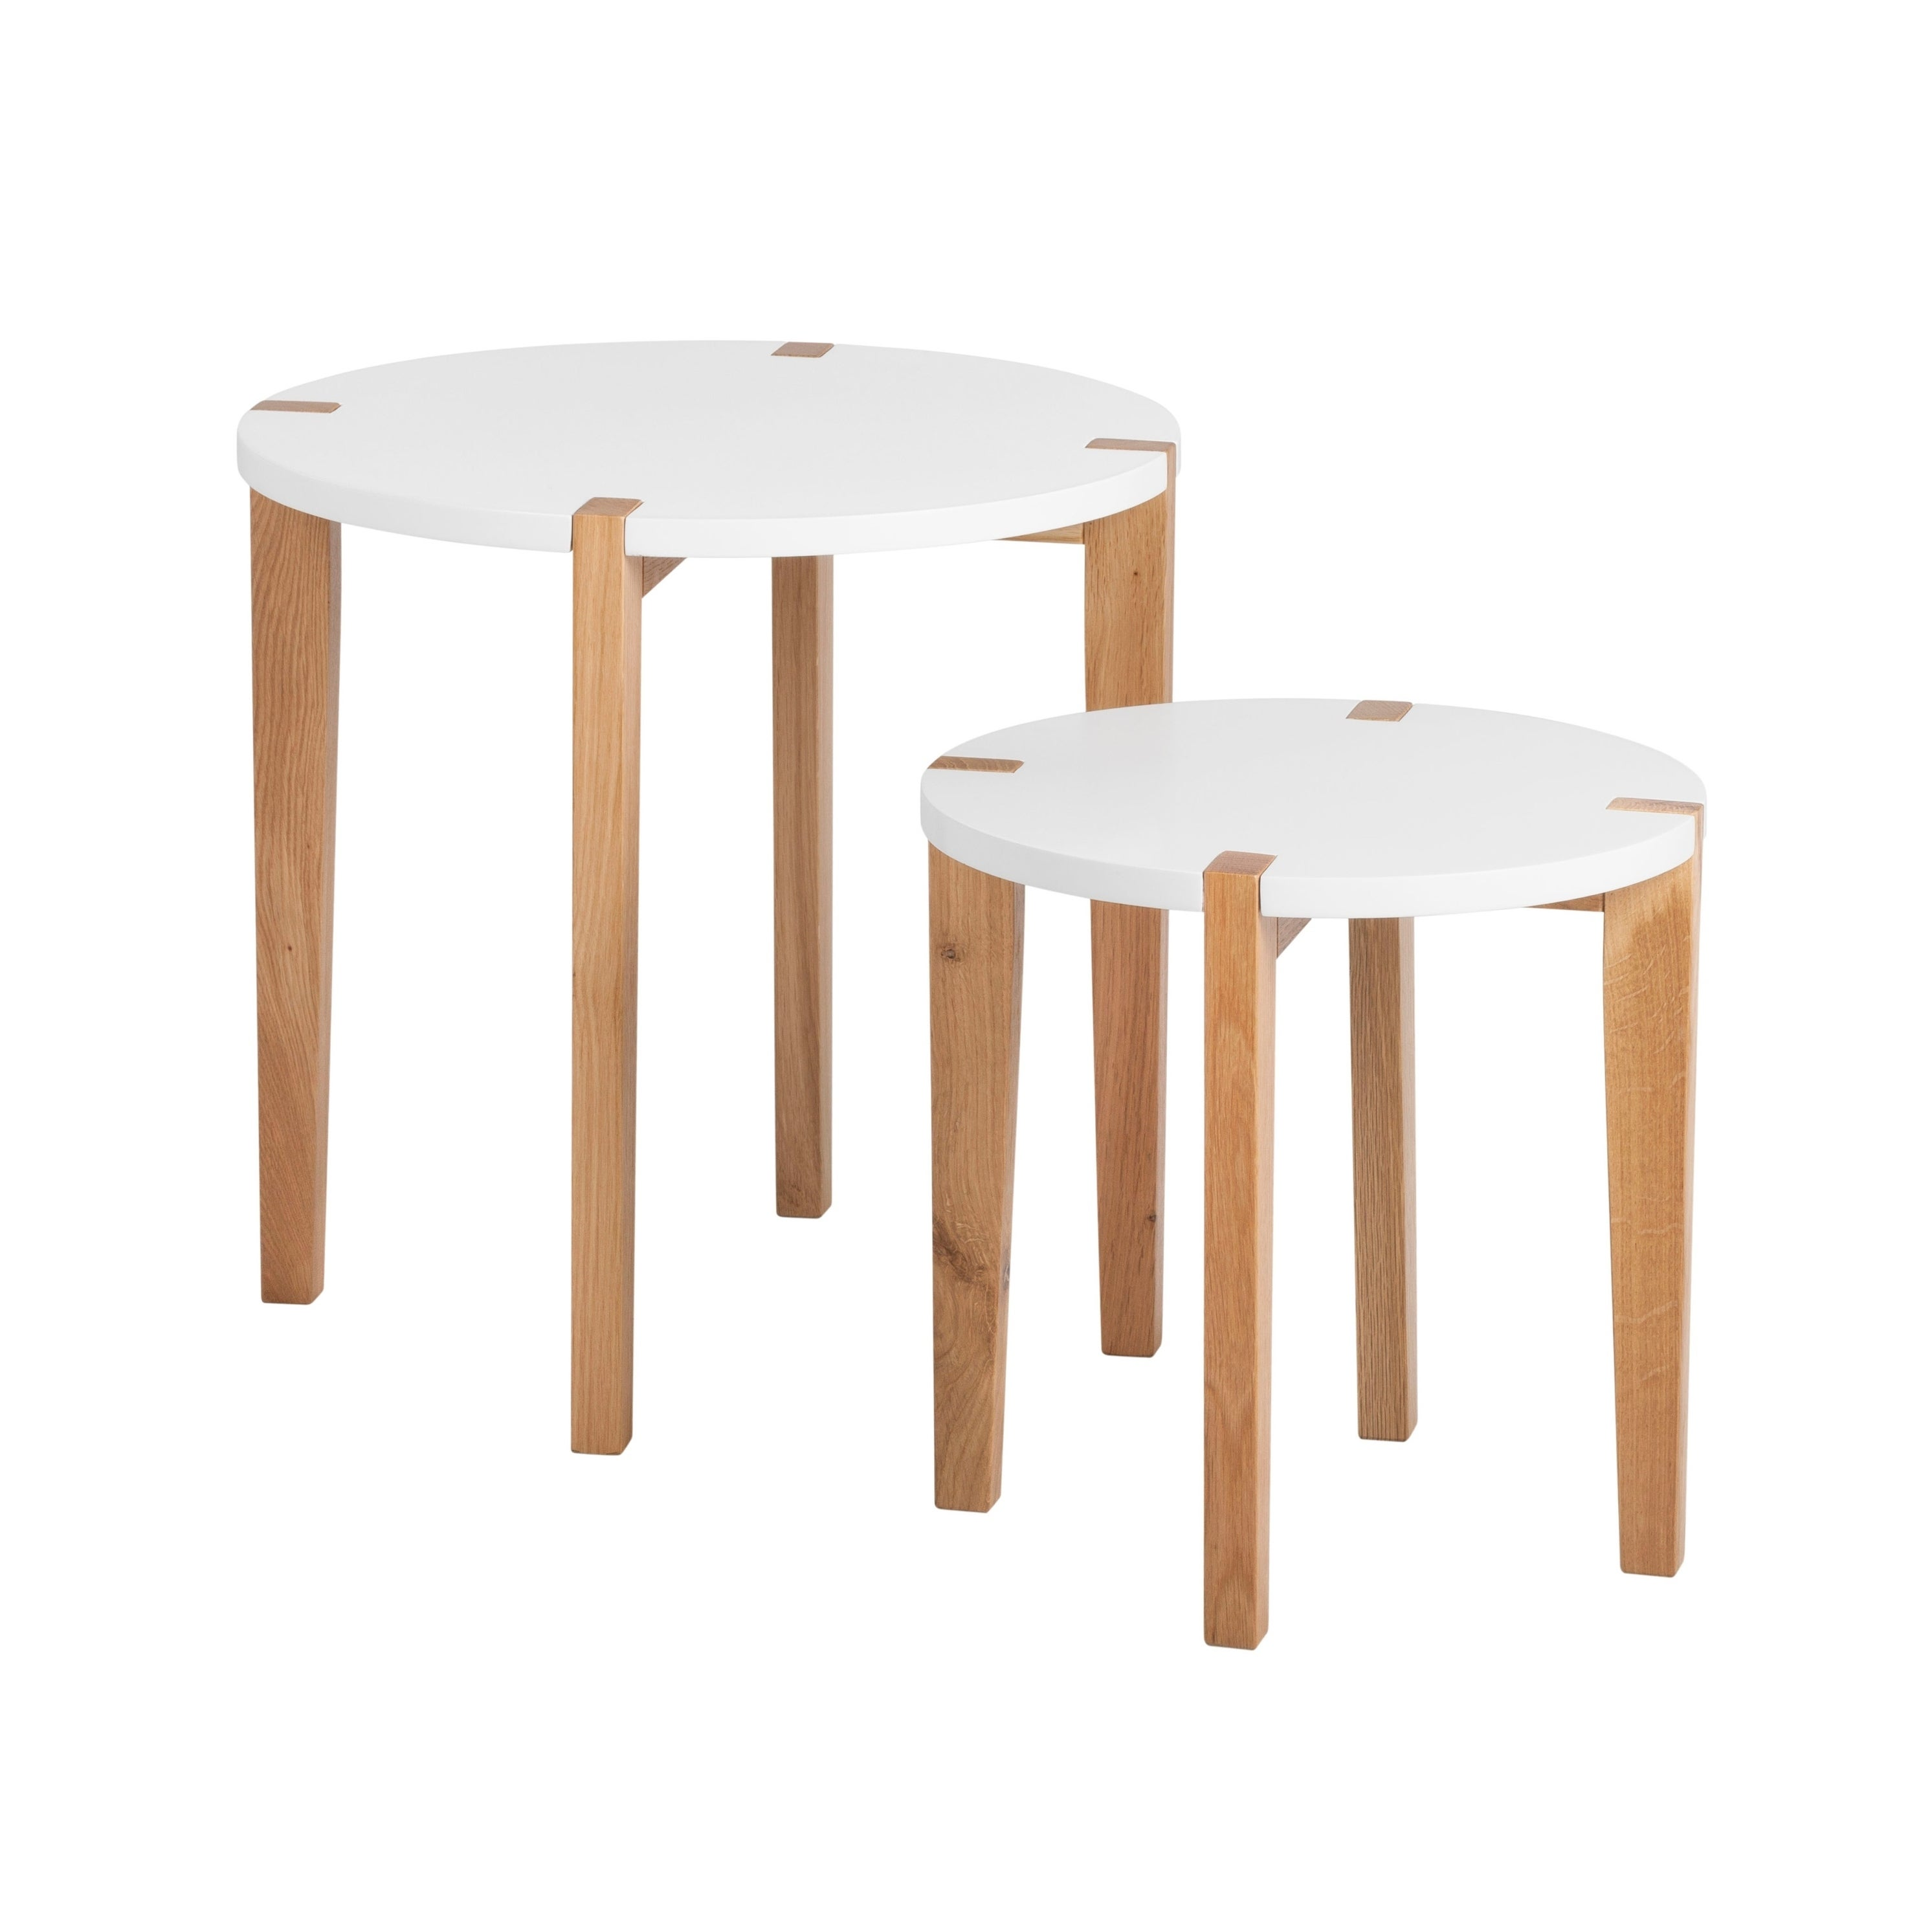 Universal Expert Abacus Modern White Oak Round Nesting Side Tables (Set of 2)